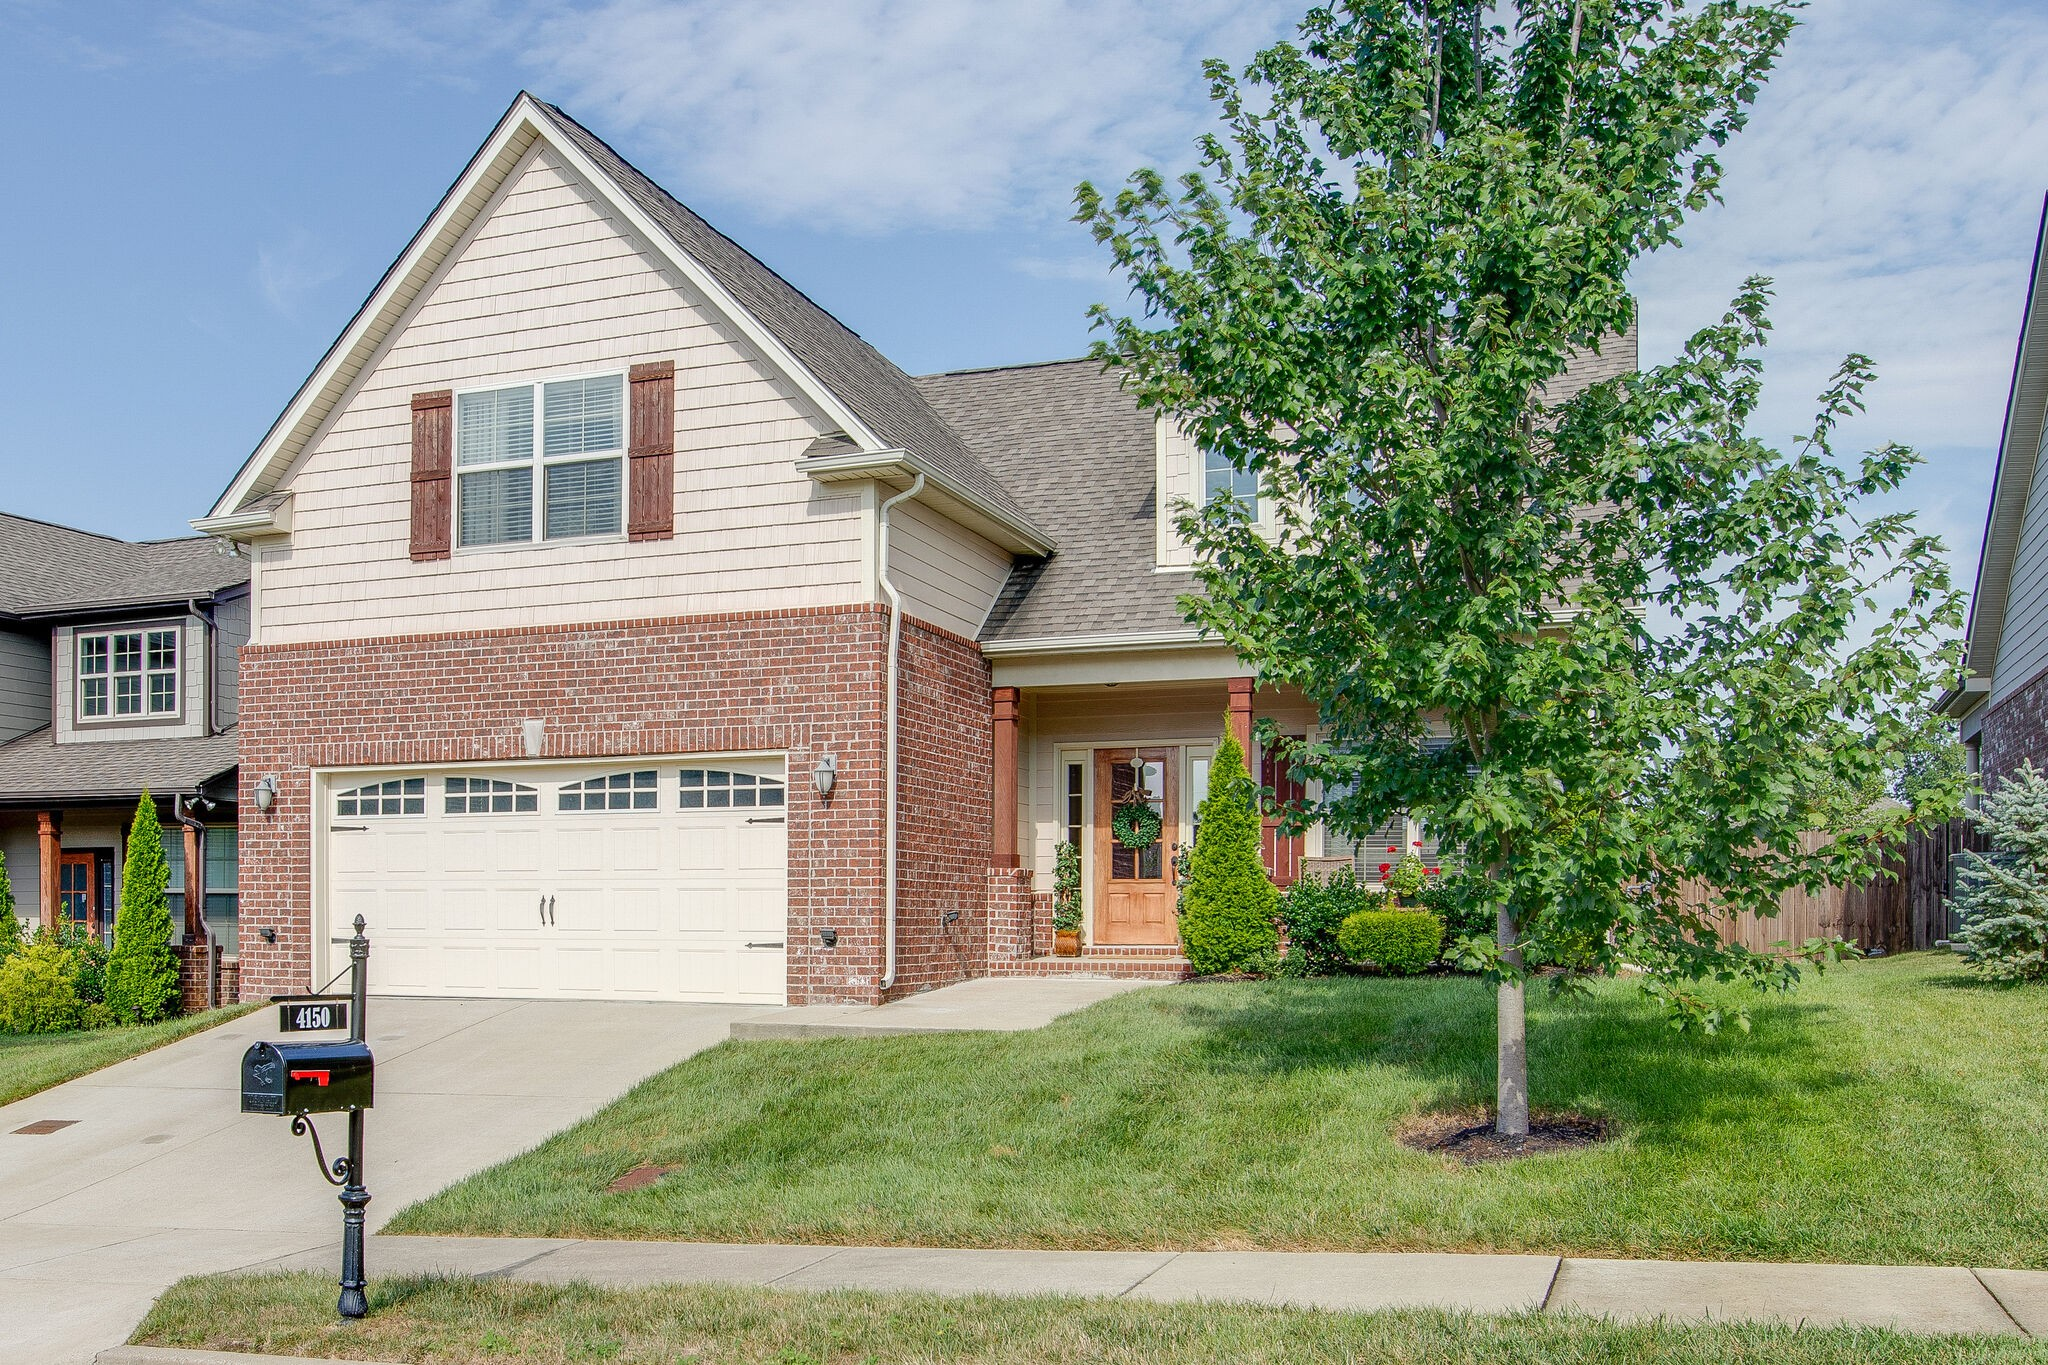 This beauty has it all, covered front porch, open floor plan, spacious master bedroom on the main level with two walk-in closets, second floor bonus room and secondary bedrooms, fireplace, covered back patio, lush backyard with a privacy fence, stainless steel appliances, hardwood floors and so much more.